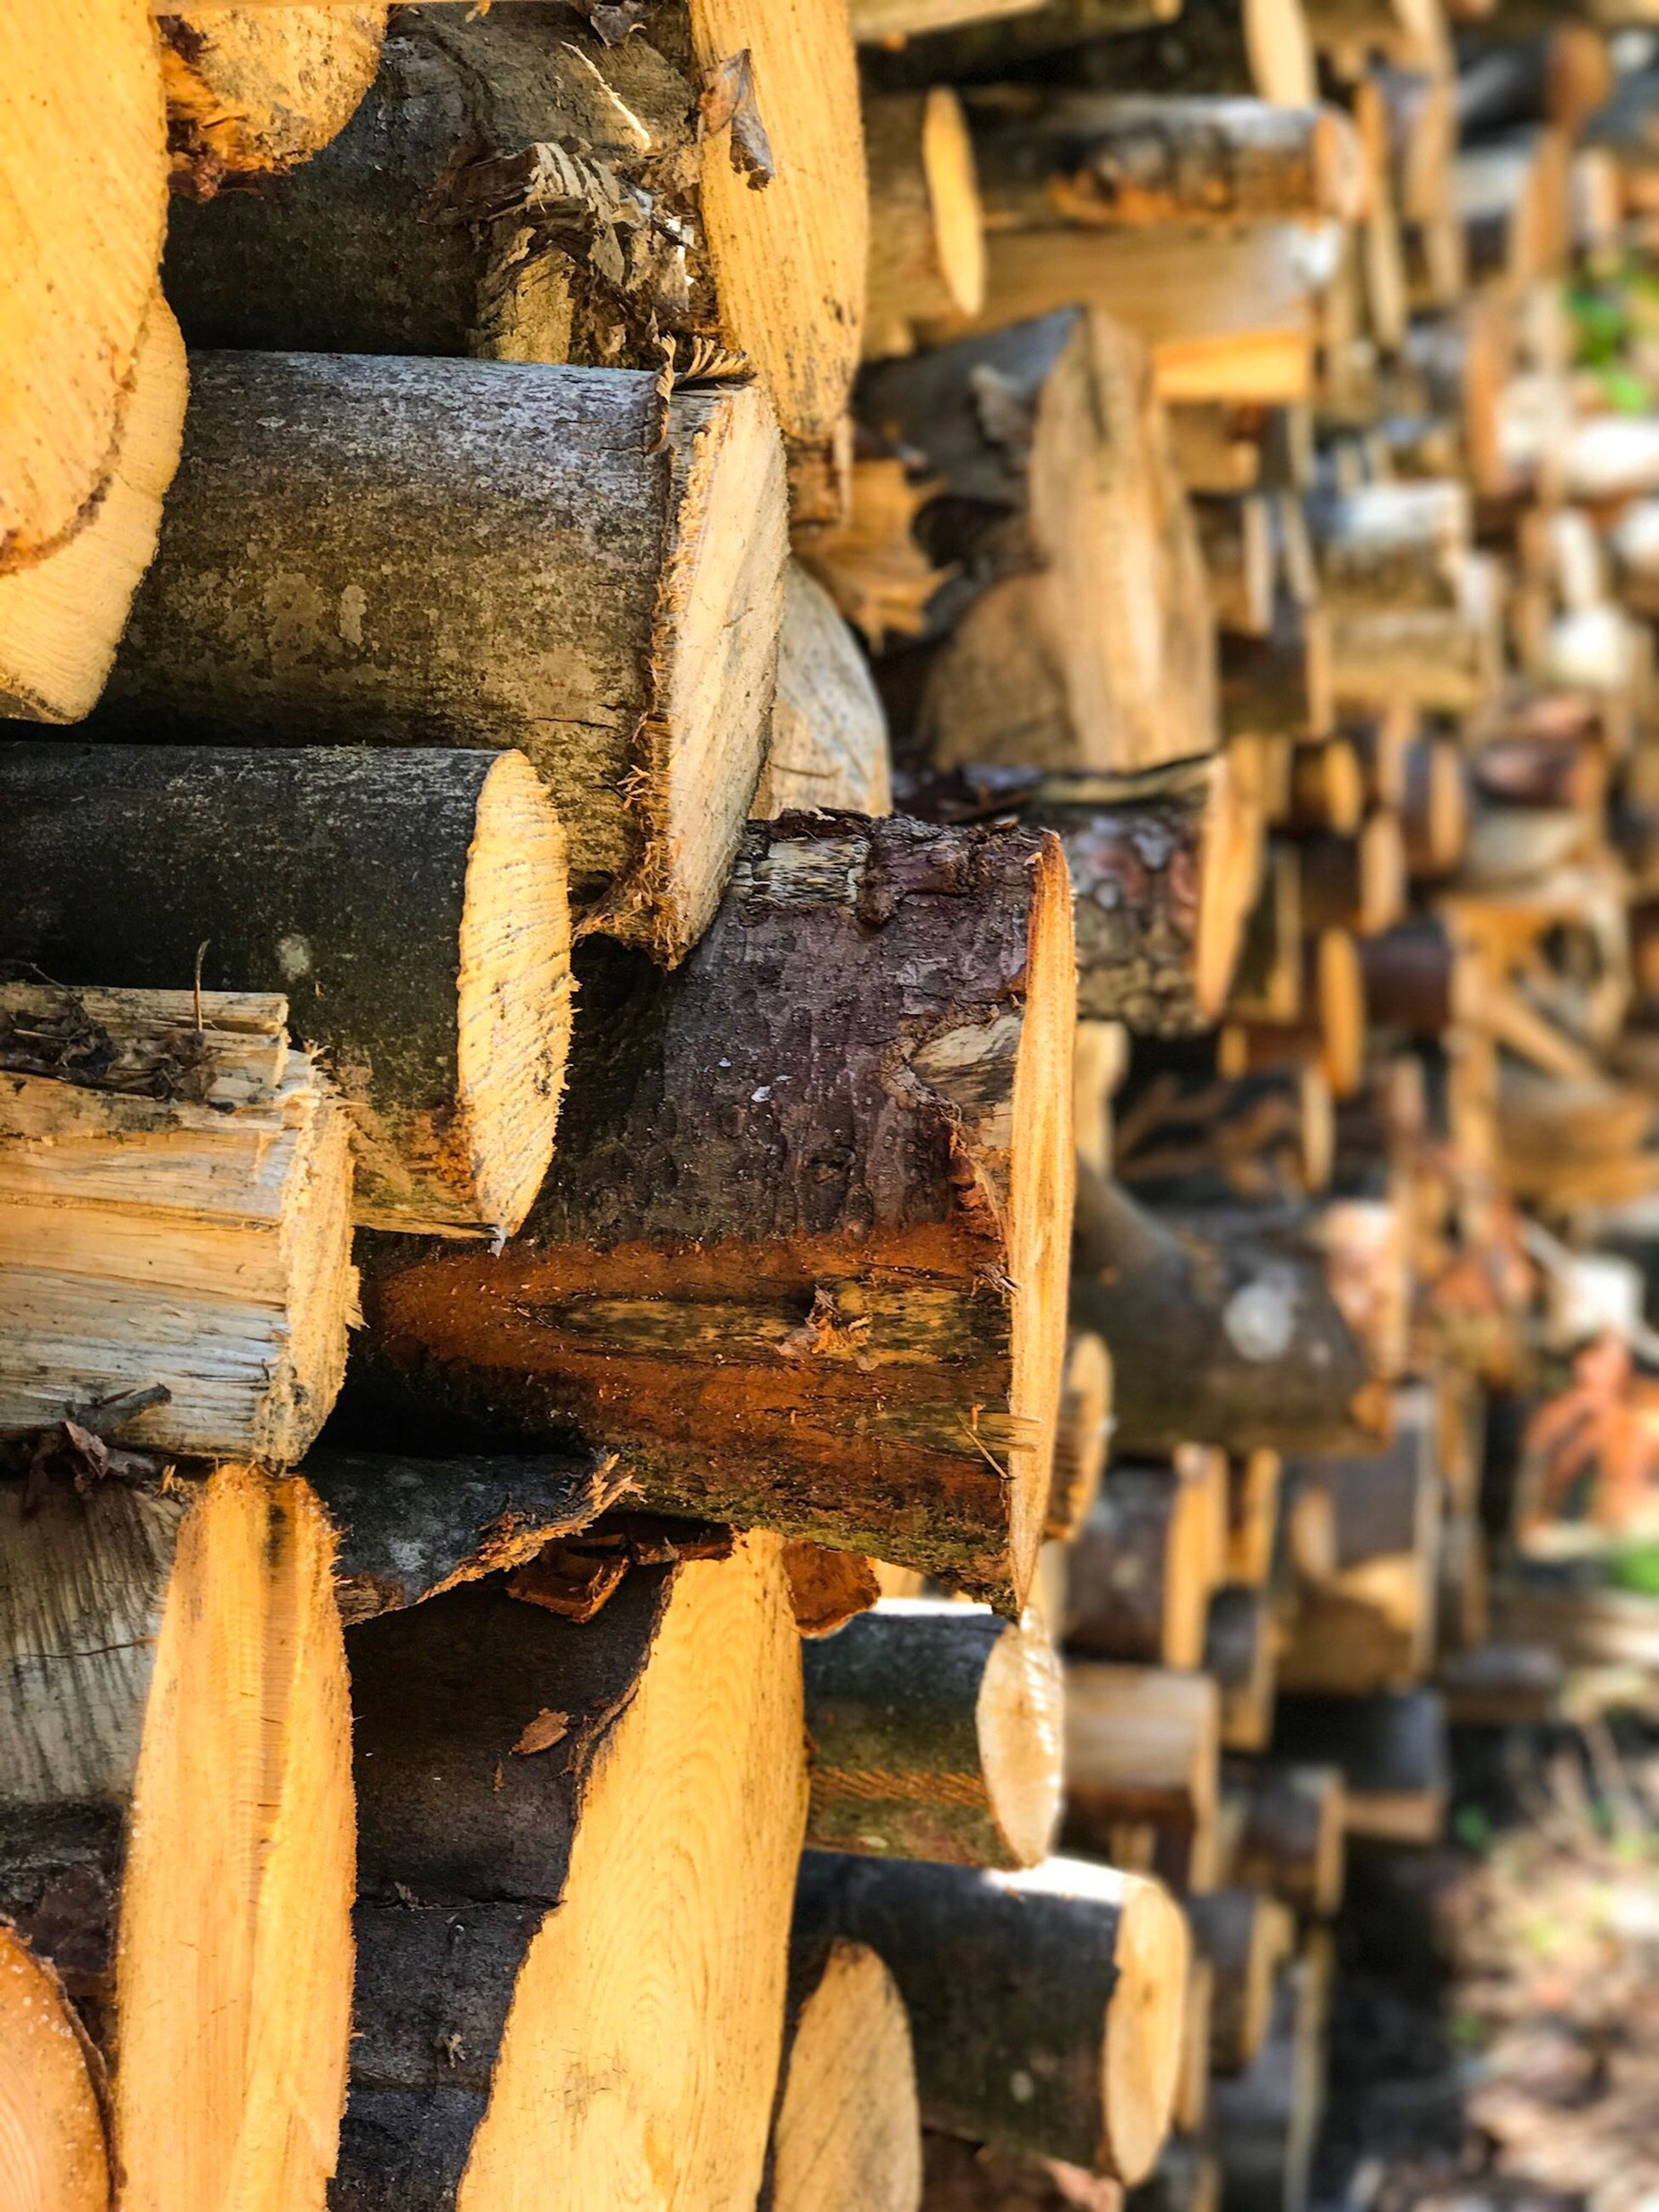 stack, lumber industry, timber, wood - material, log, deforestation, fuel and power generation, woodpile, pile, heap, forestry industry, textured, day, large group of objects, industry, outdoors, close-up, axe, no people